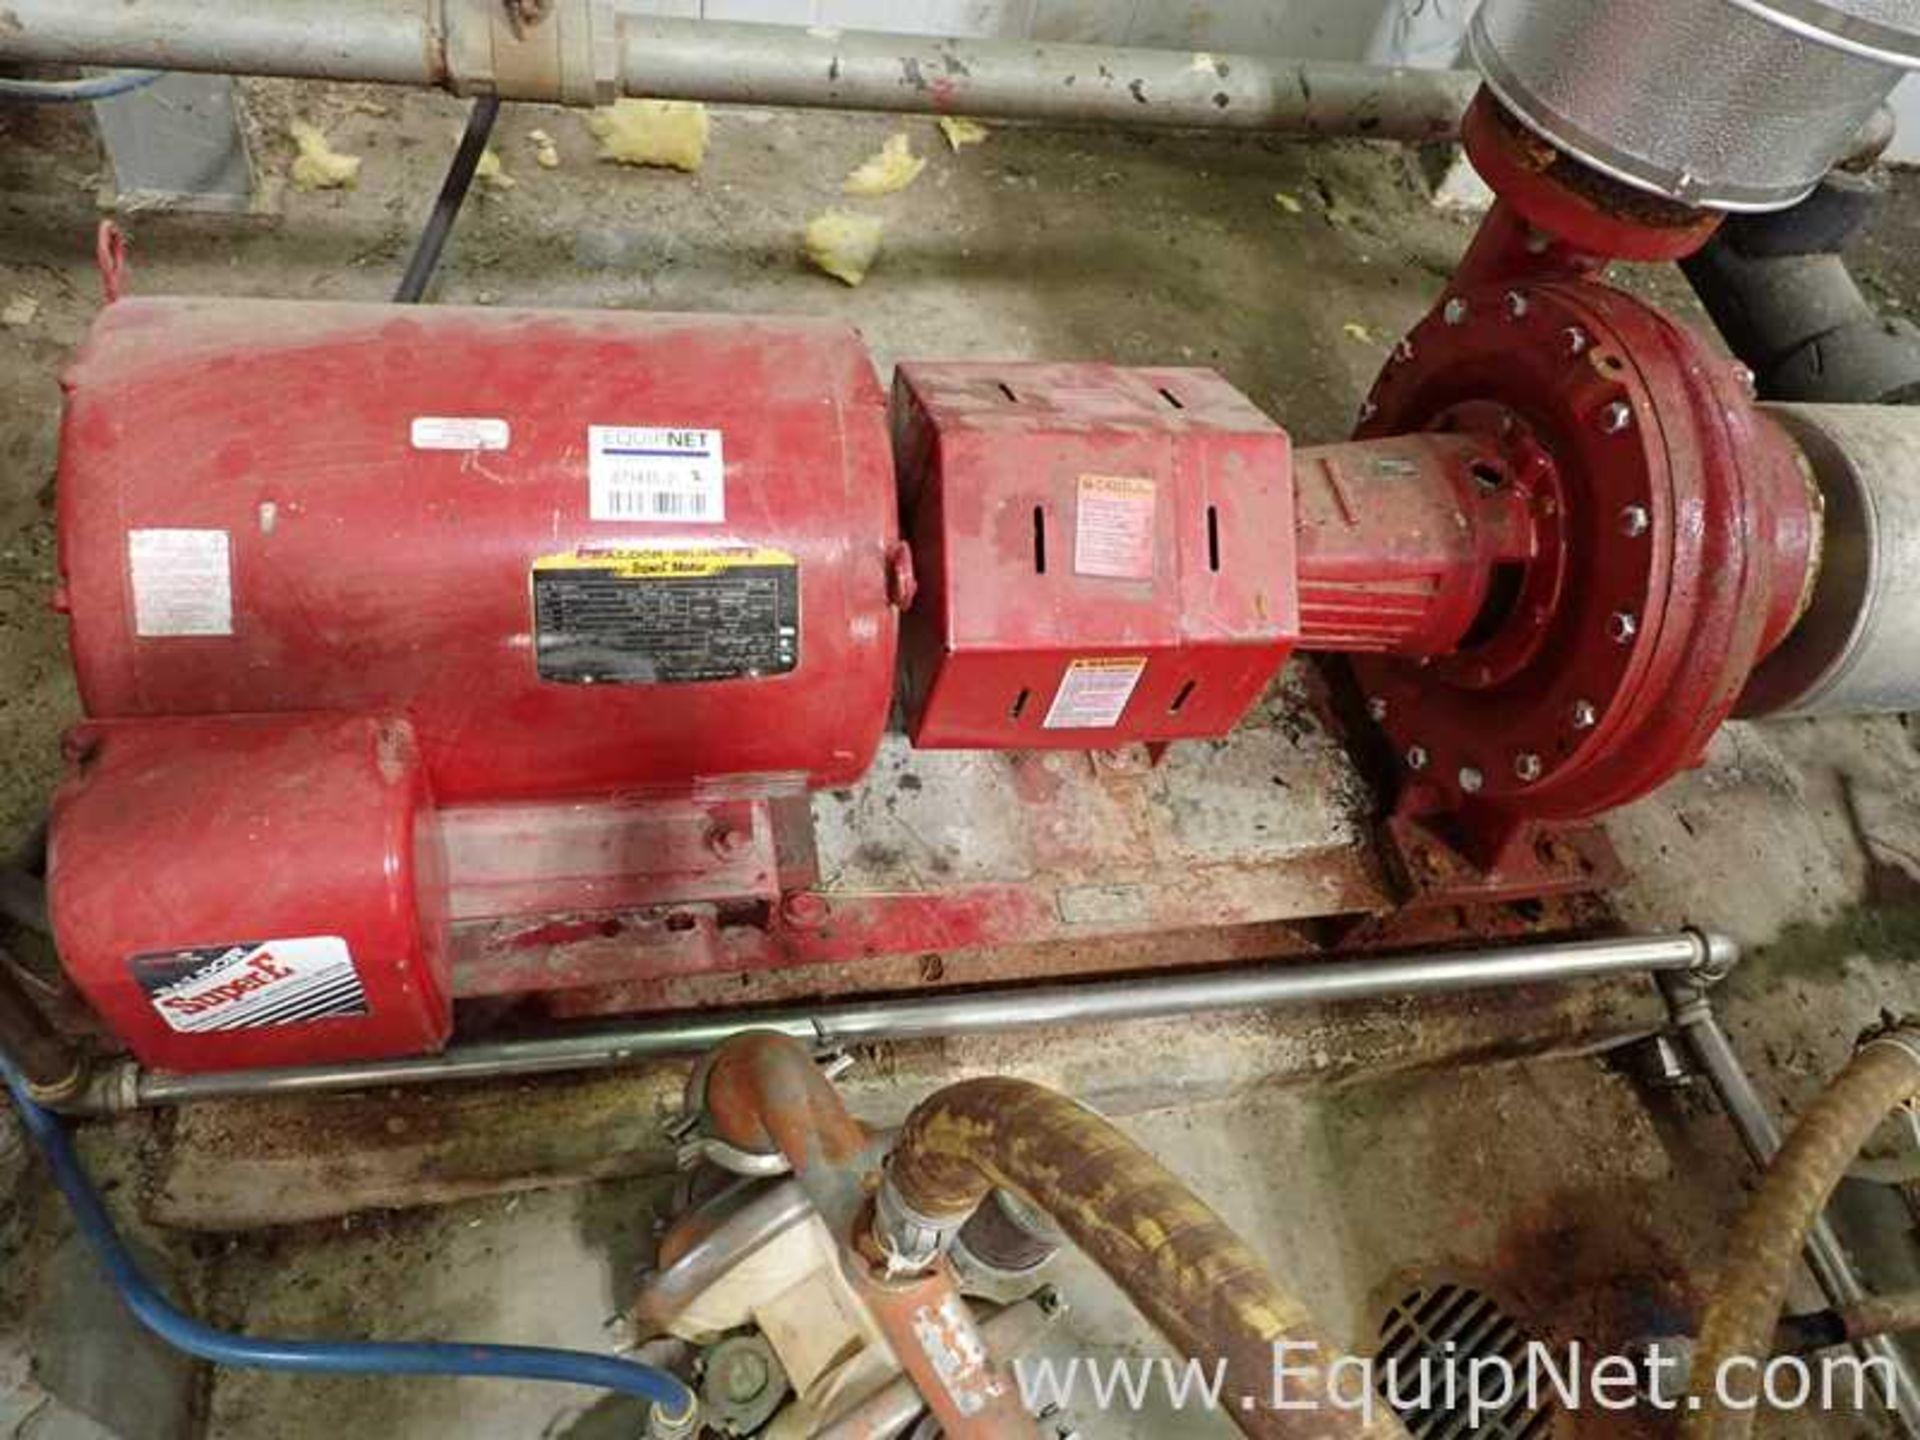 Lot of 2 Bell and Gossett e-1510 25 HP Centrifugal Pumps - Image 7 of 11